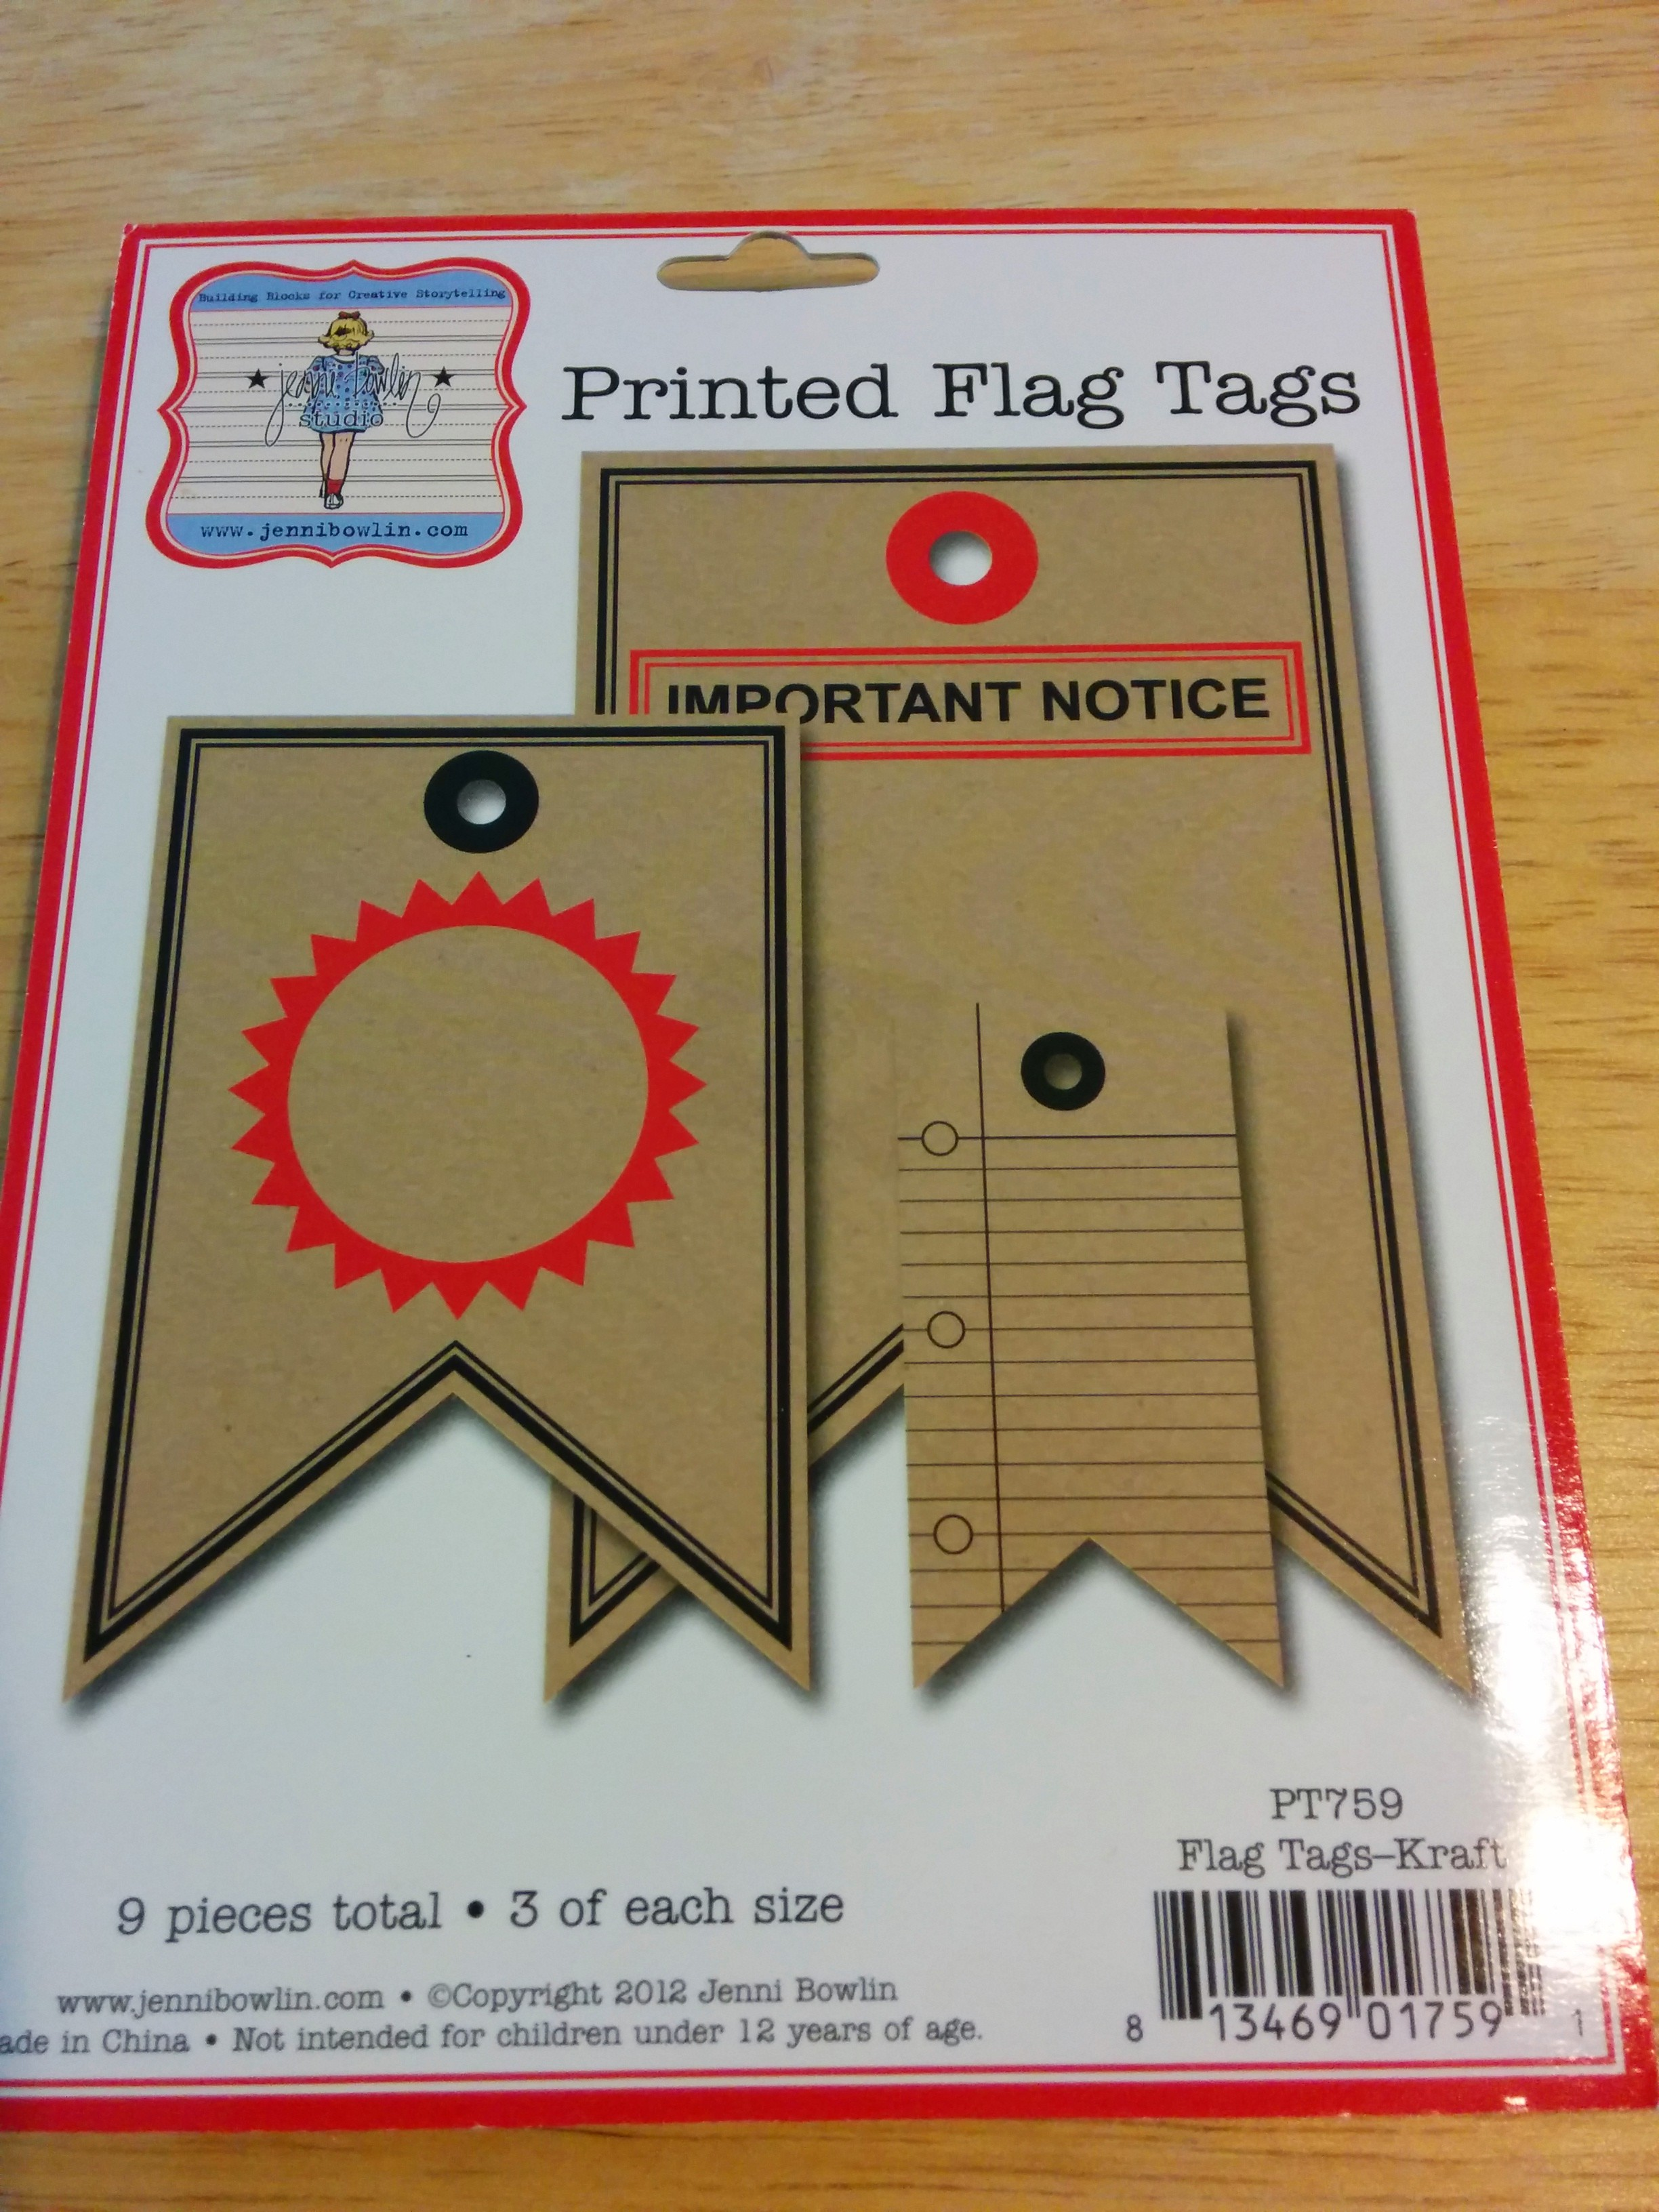 Scrapbook ideas recycled - Printed Flag Tags Img_20140625_132141